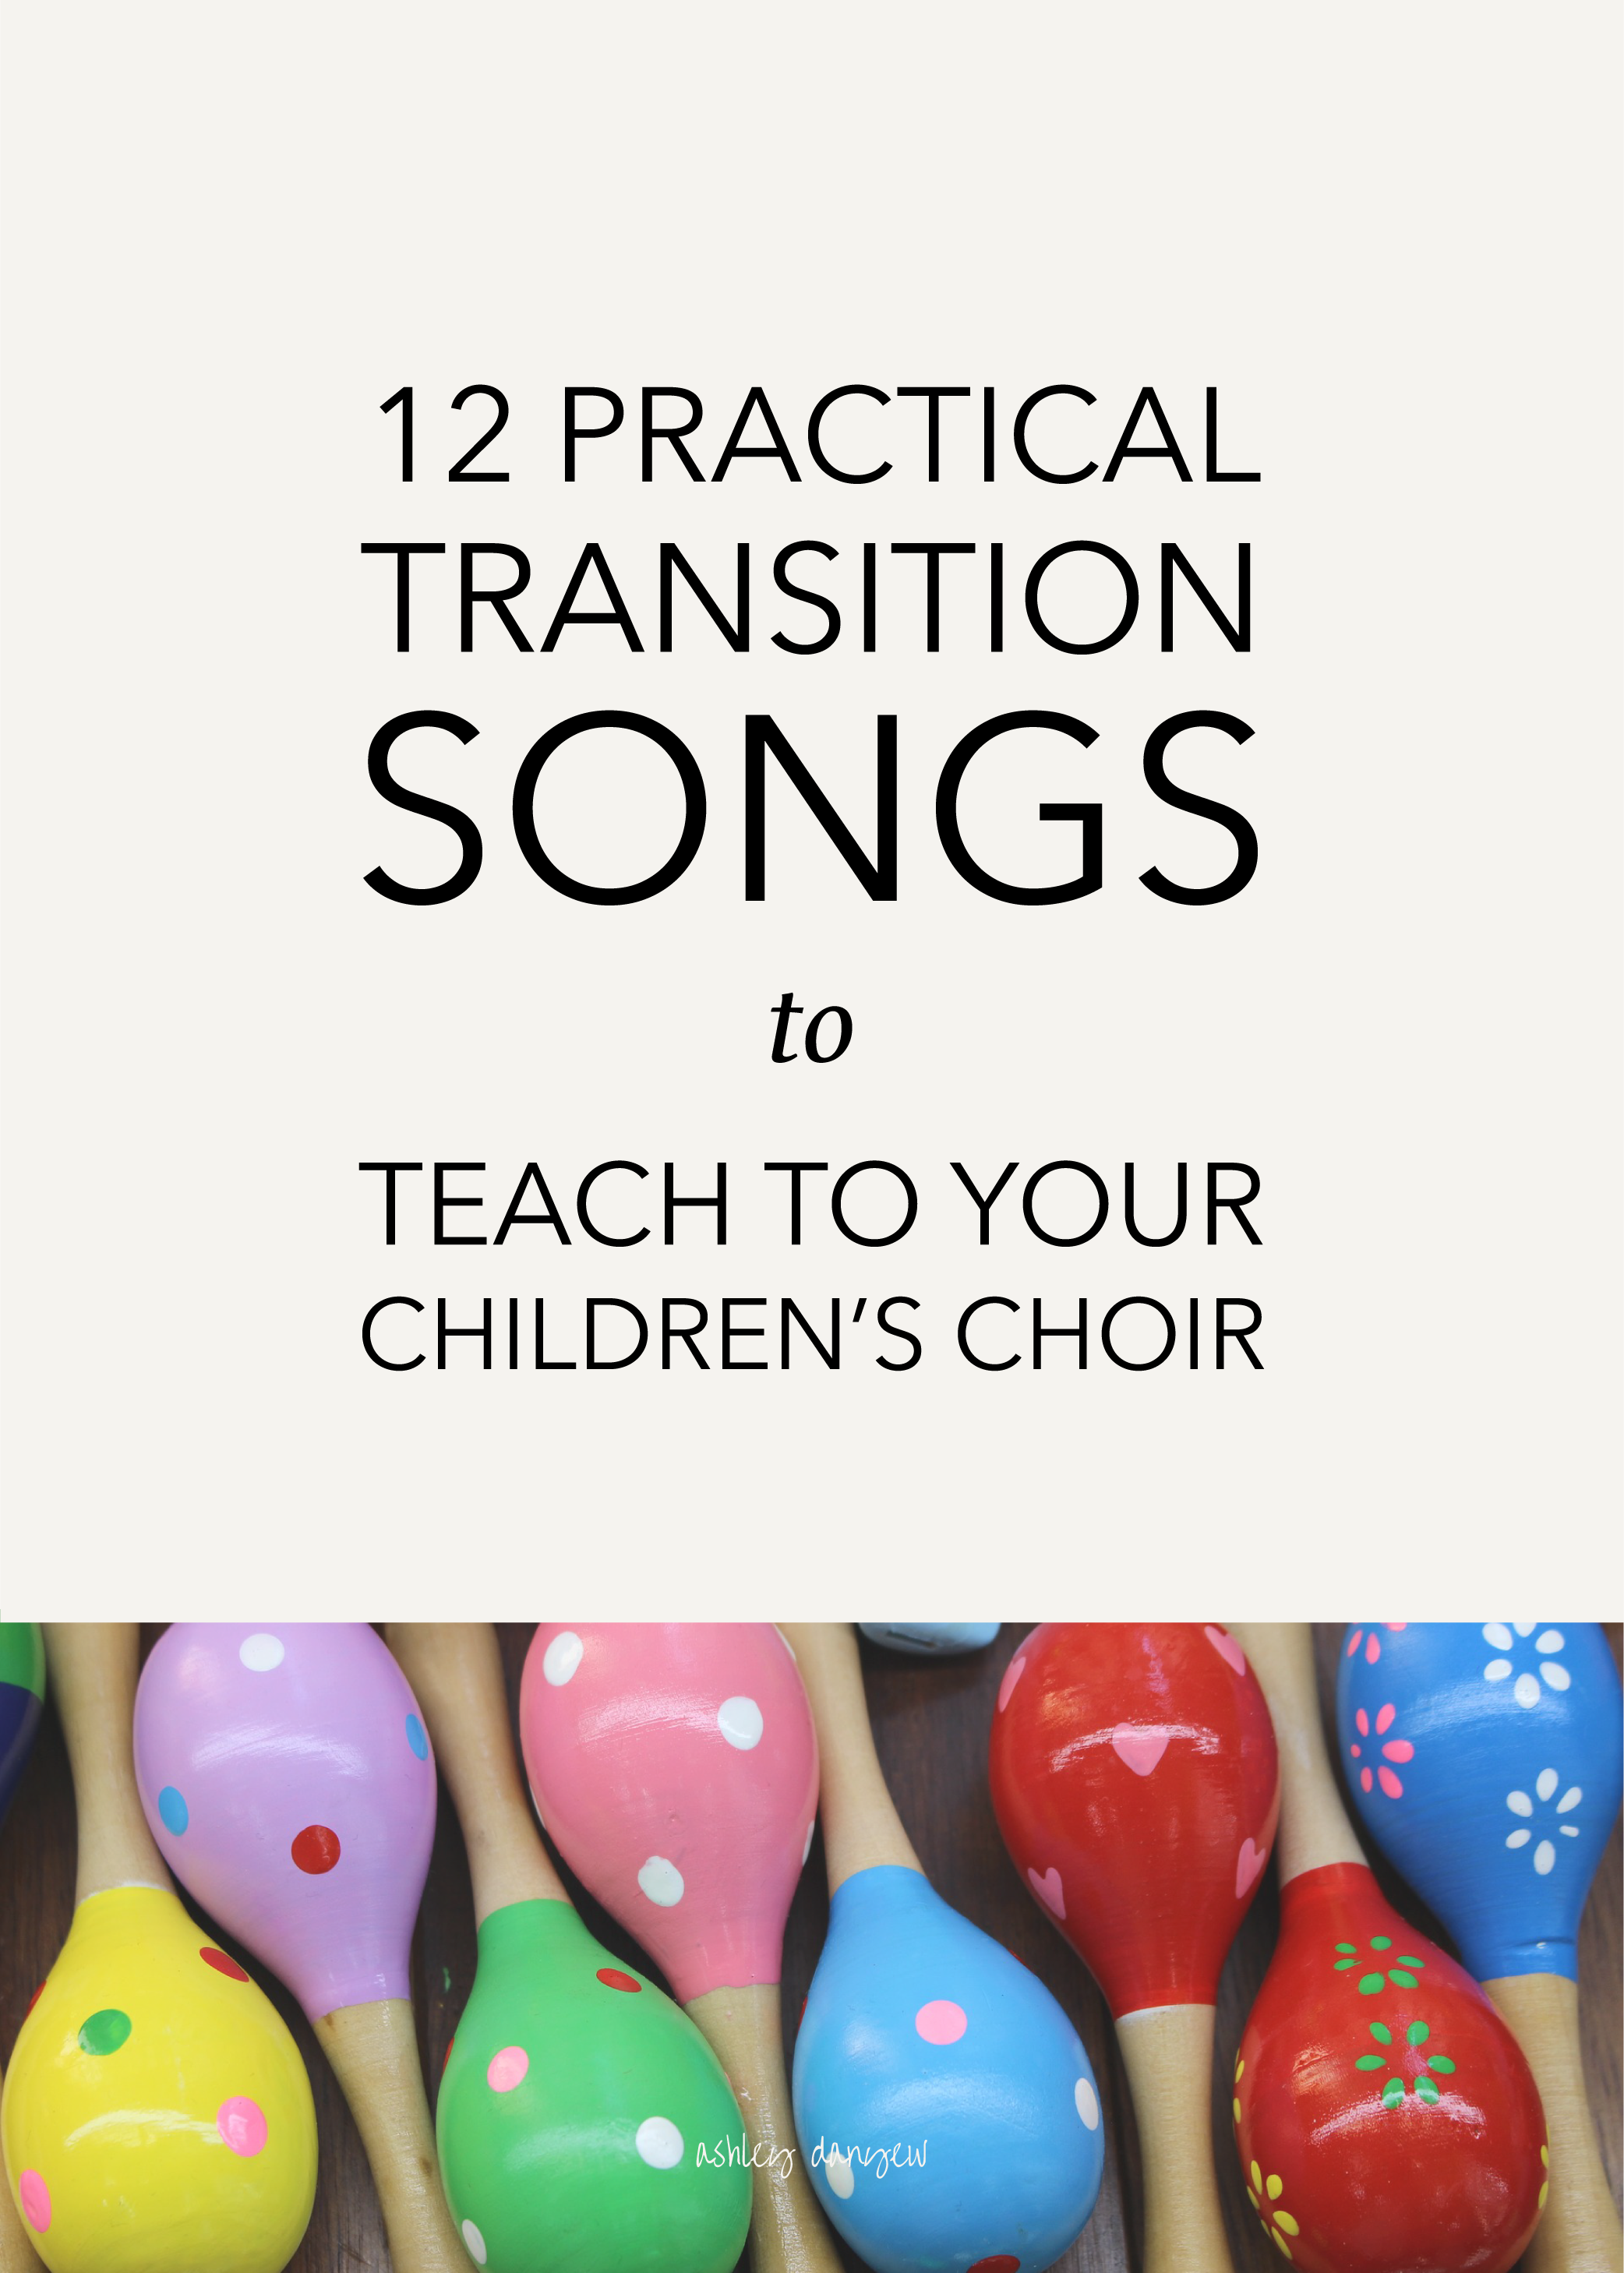 12 Practical Transition Songs to Teach to Your Children's Choir-56.png